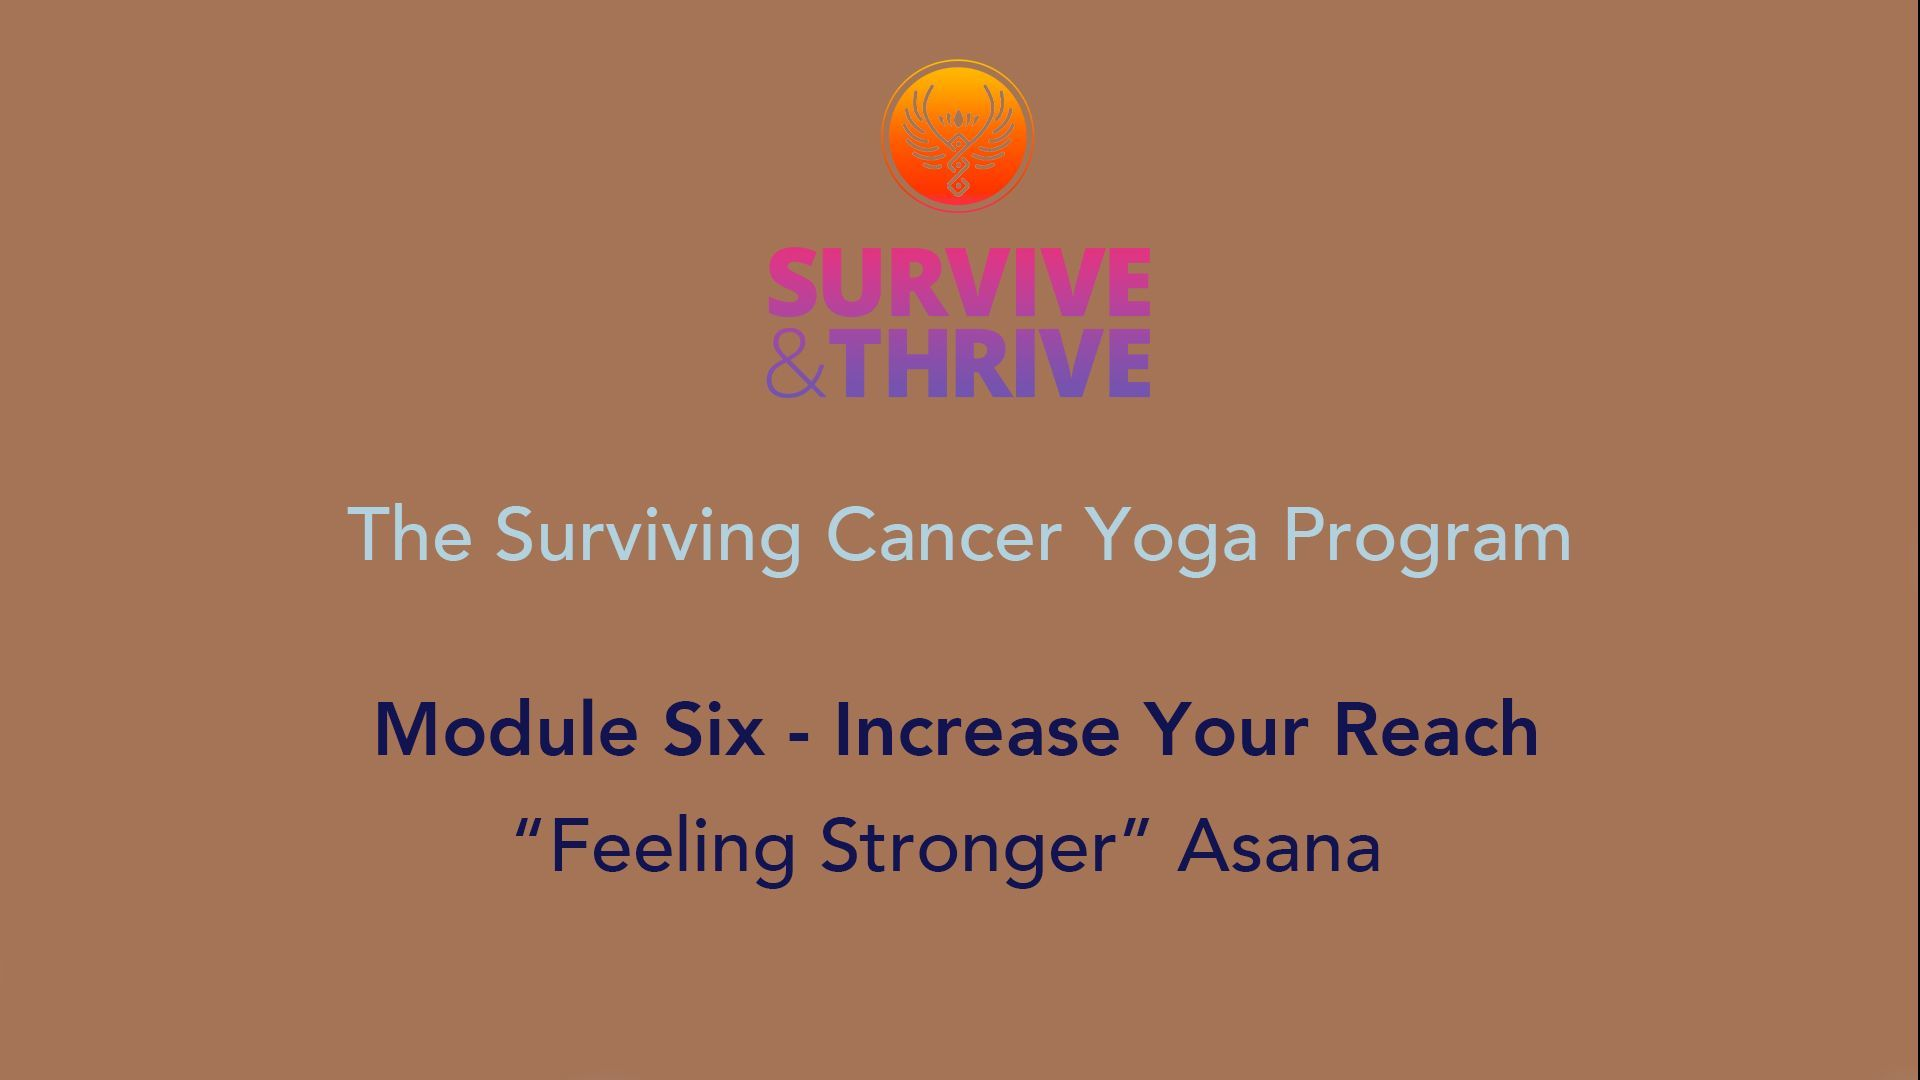 SURVIVE AND THRIVE | MODULE 6 - INCREASE YOUR REACH | FEELING STRONGER ASANA